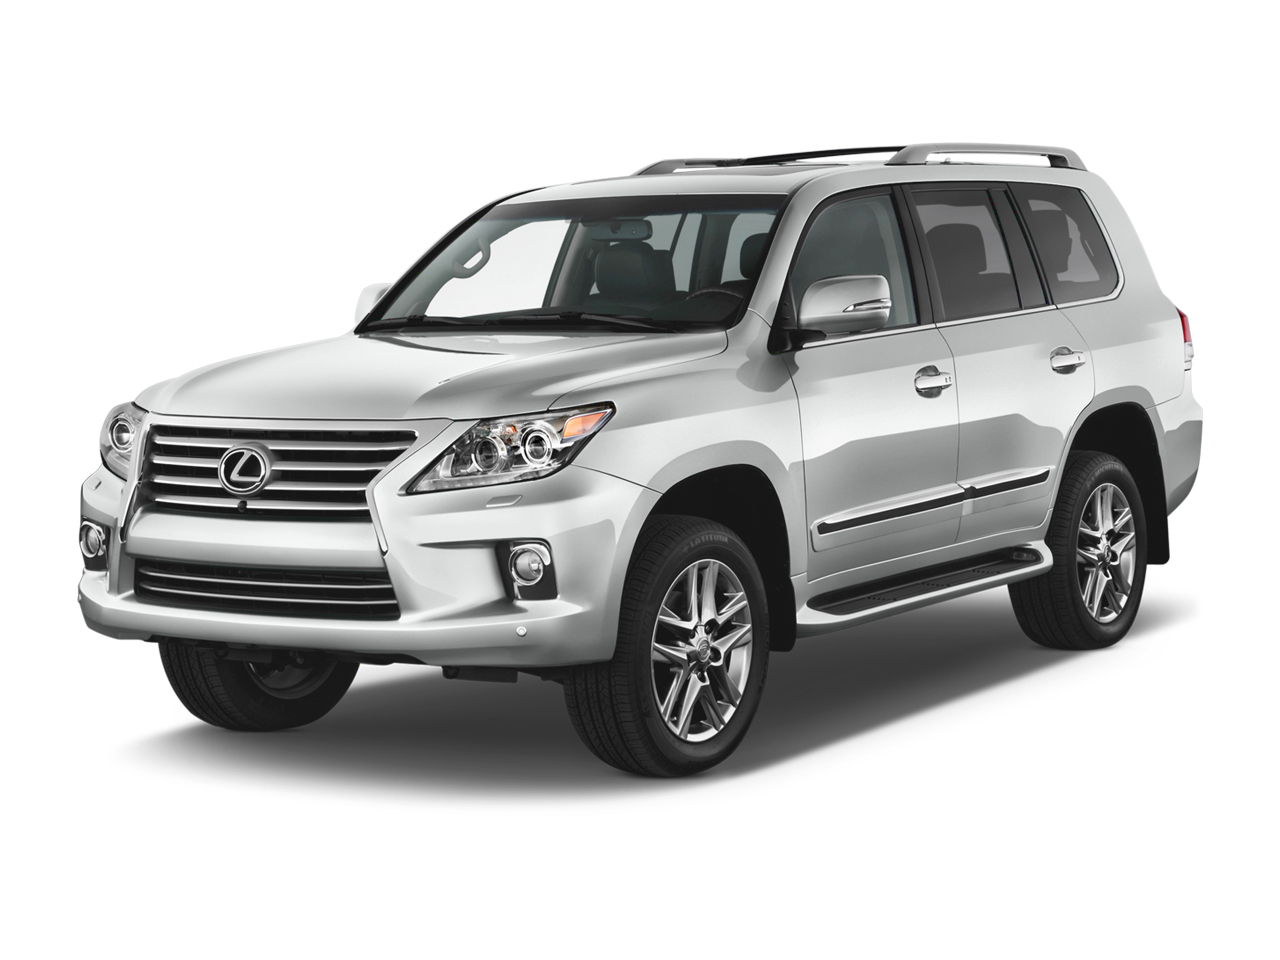 lexus lx 570 2015 suv drive. Black Bedroom Furniture Sets. Home Design Ideas